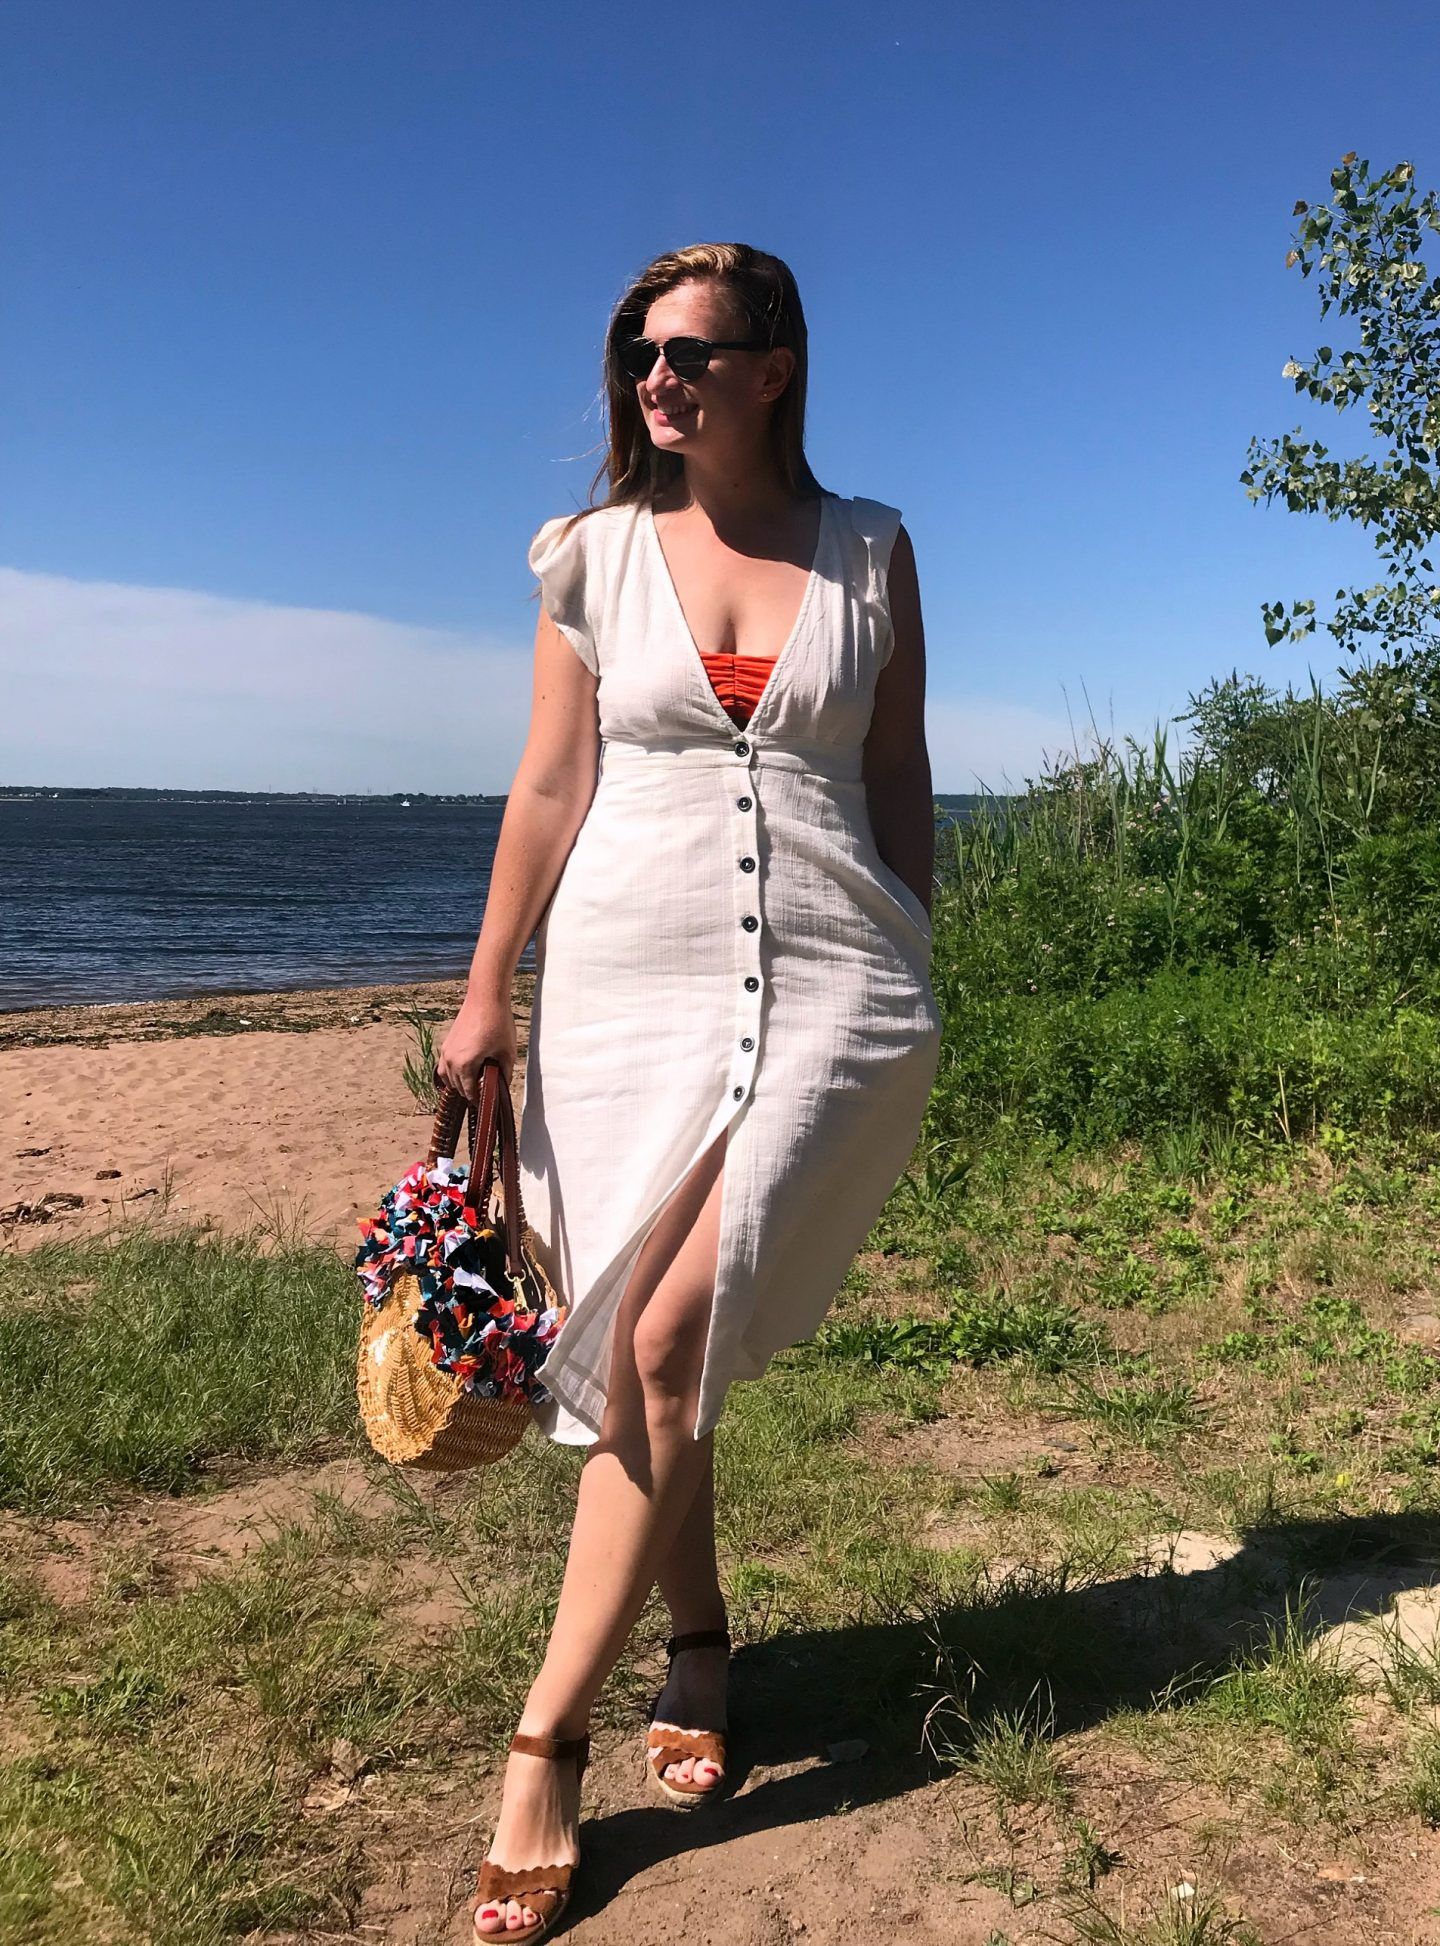 White Summer Dress: Day 4 of The EasilyDressed Challenge Part II